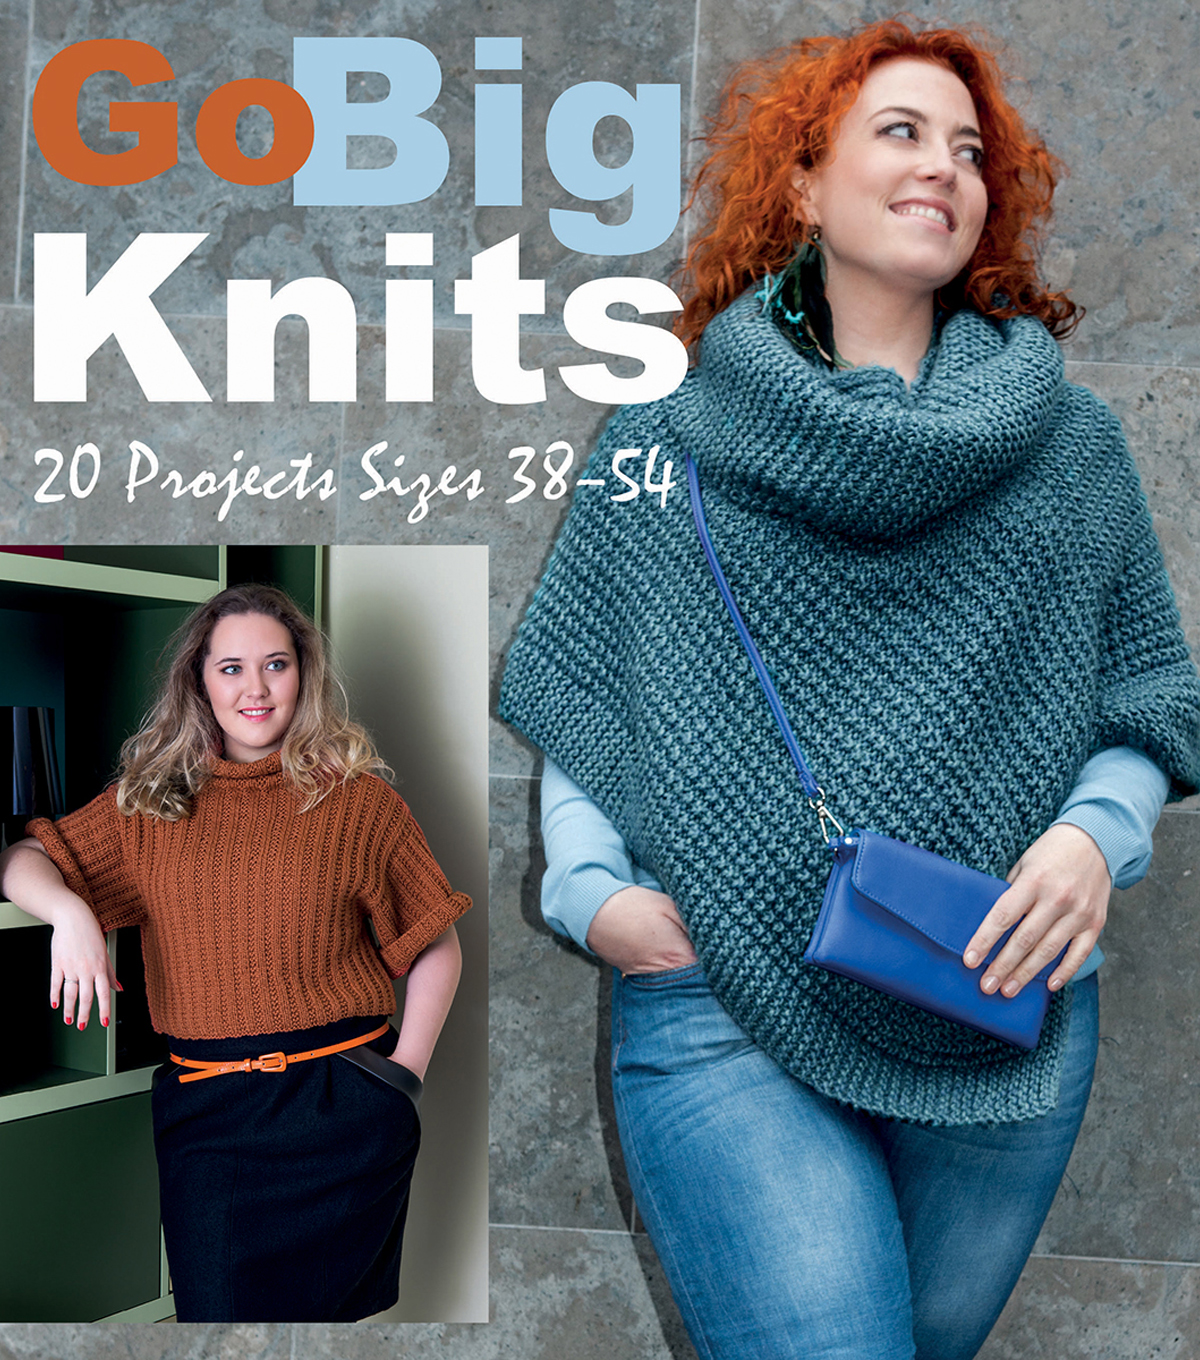 Trafalgar Square Books-Go Big Knits